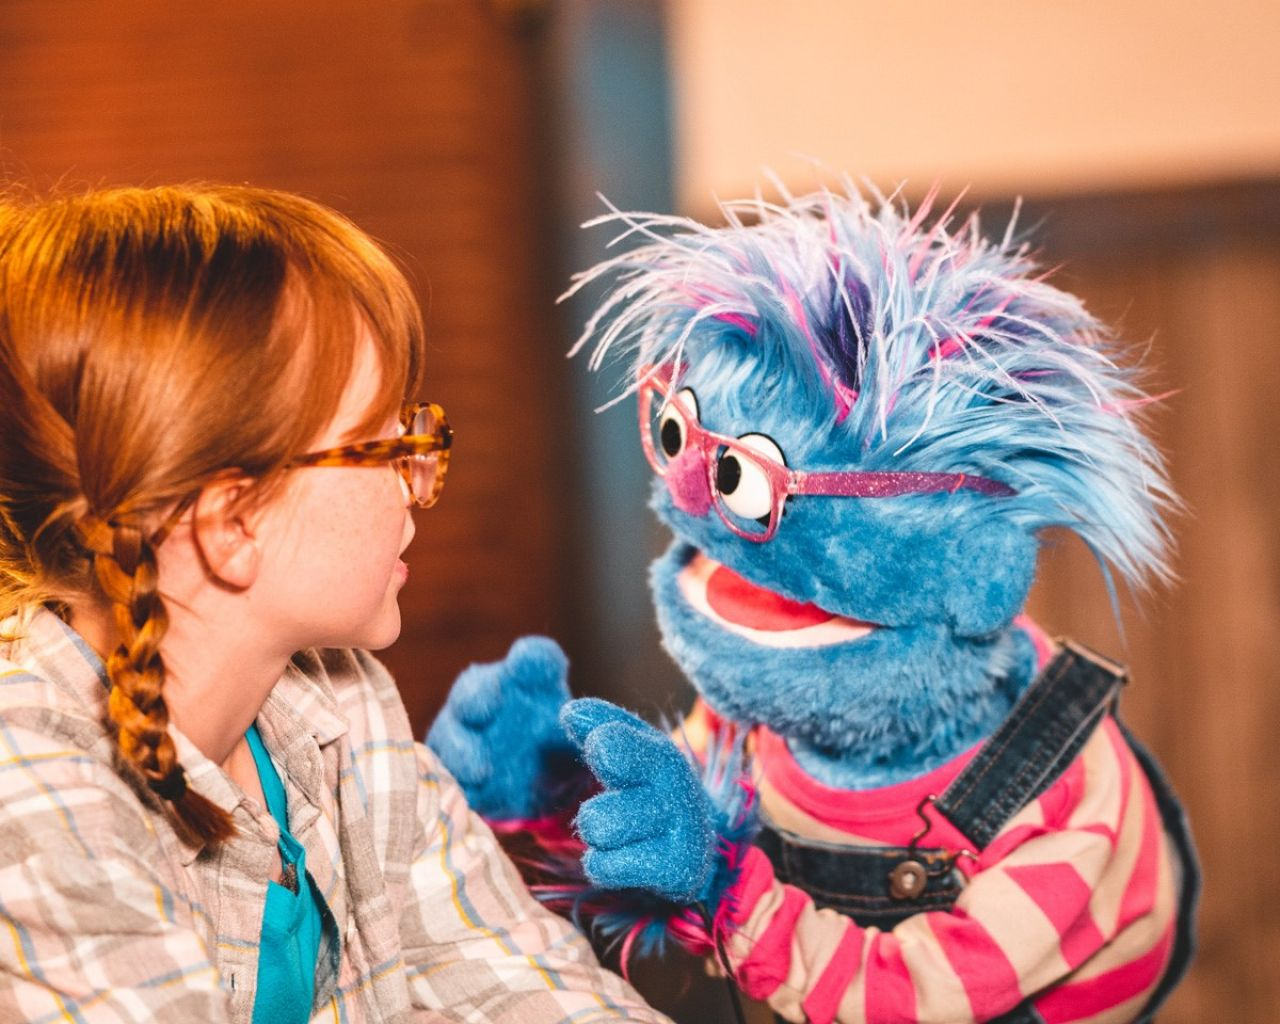 Max, in a brown plaid button down over a turquoise tee, looks at Blueberry - dressed in a long-sleeved pink and gray striped top under denim overalls, who is talking and gesturing excitedly.